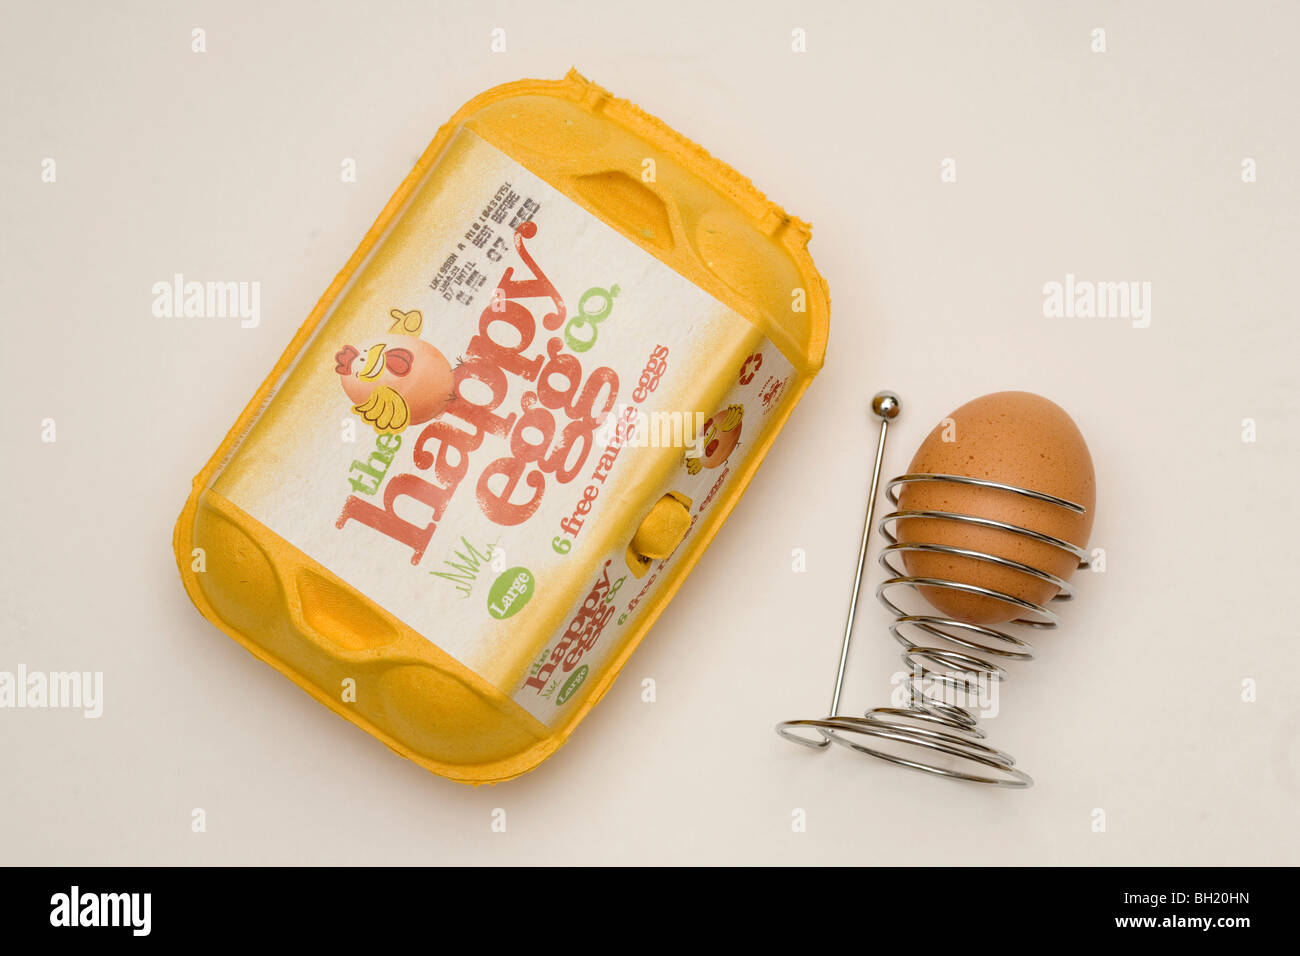 Free Range Eggs.  Picture by James Boardman - Stock Image